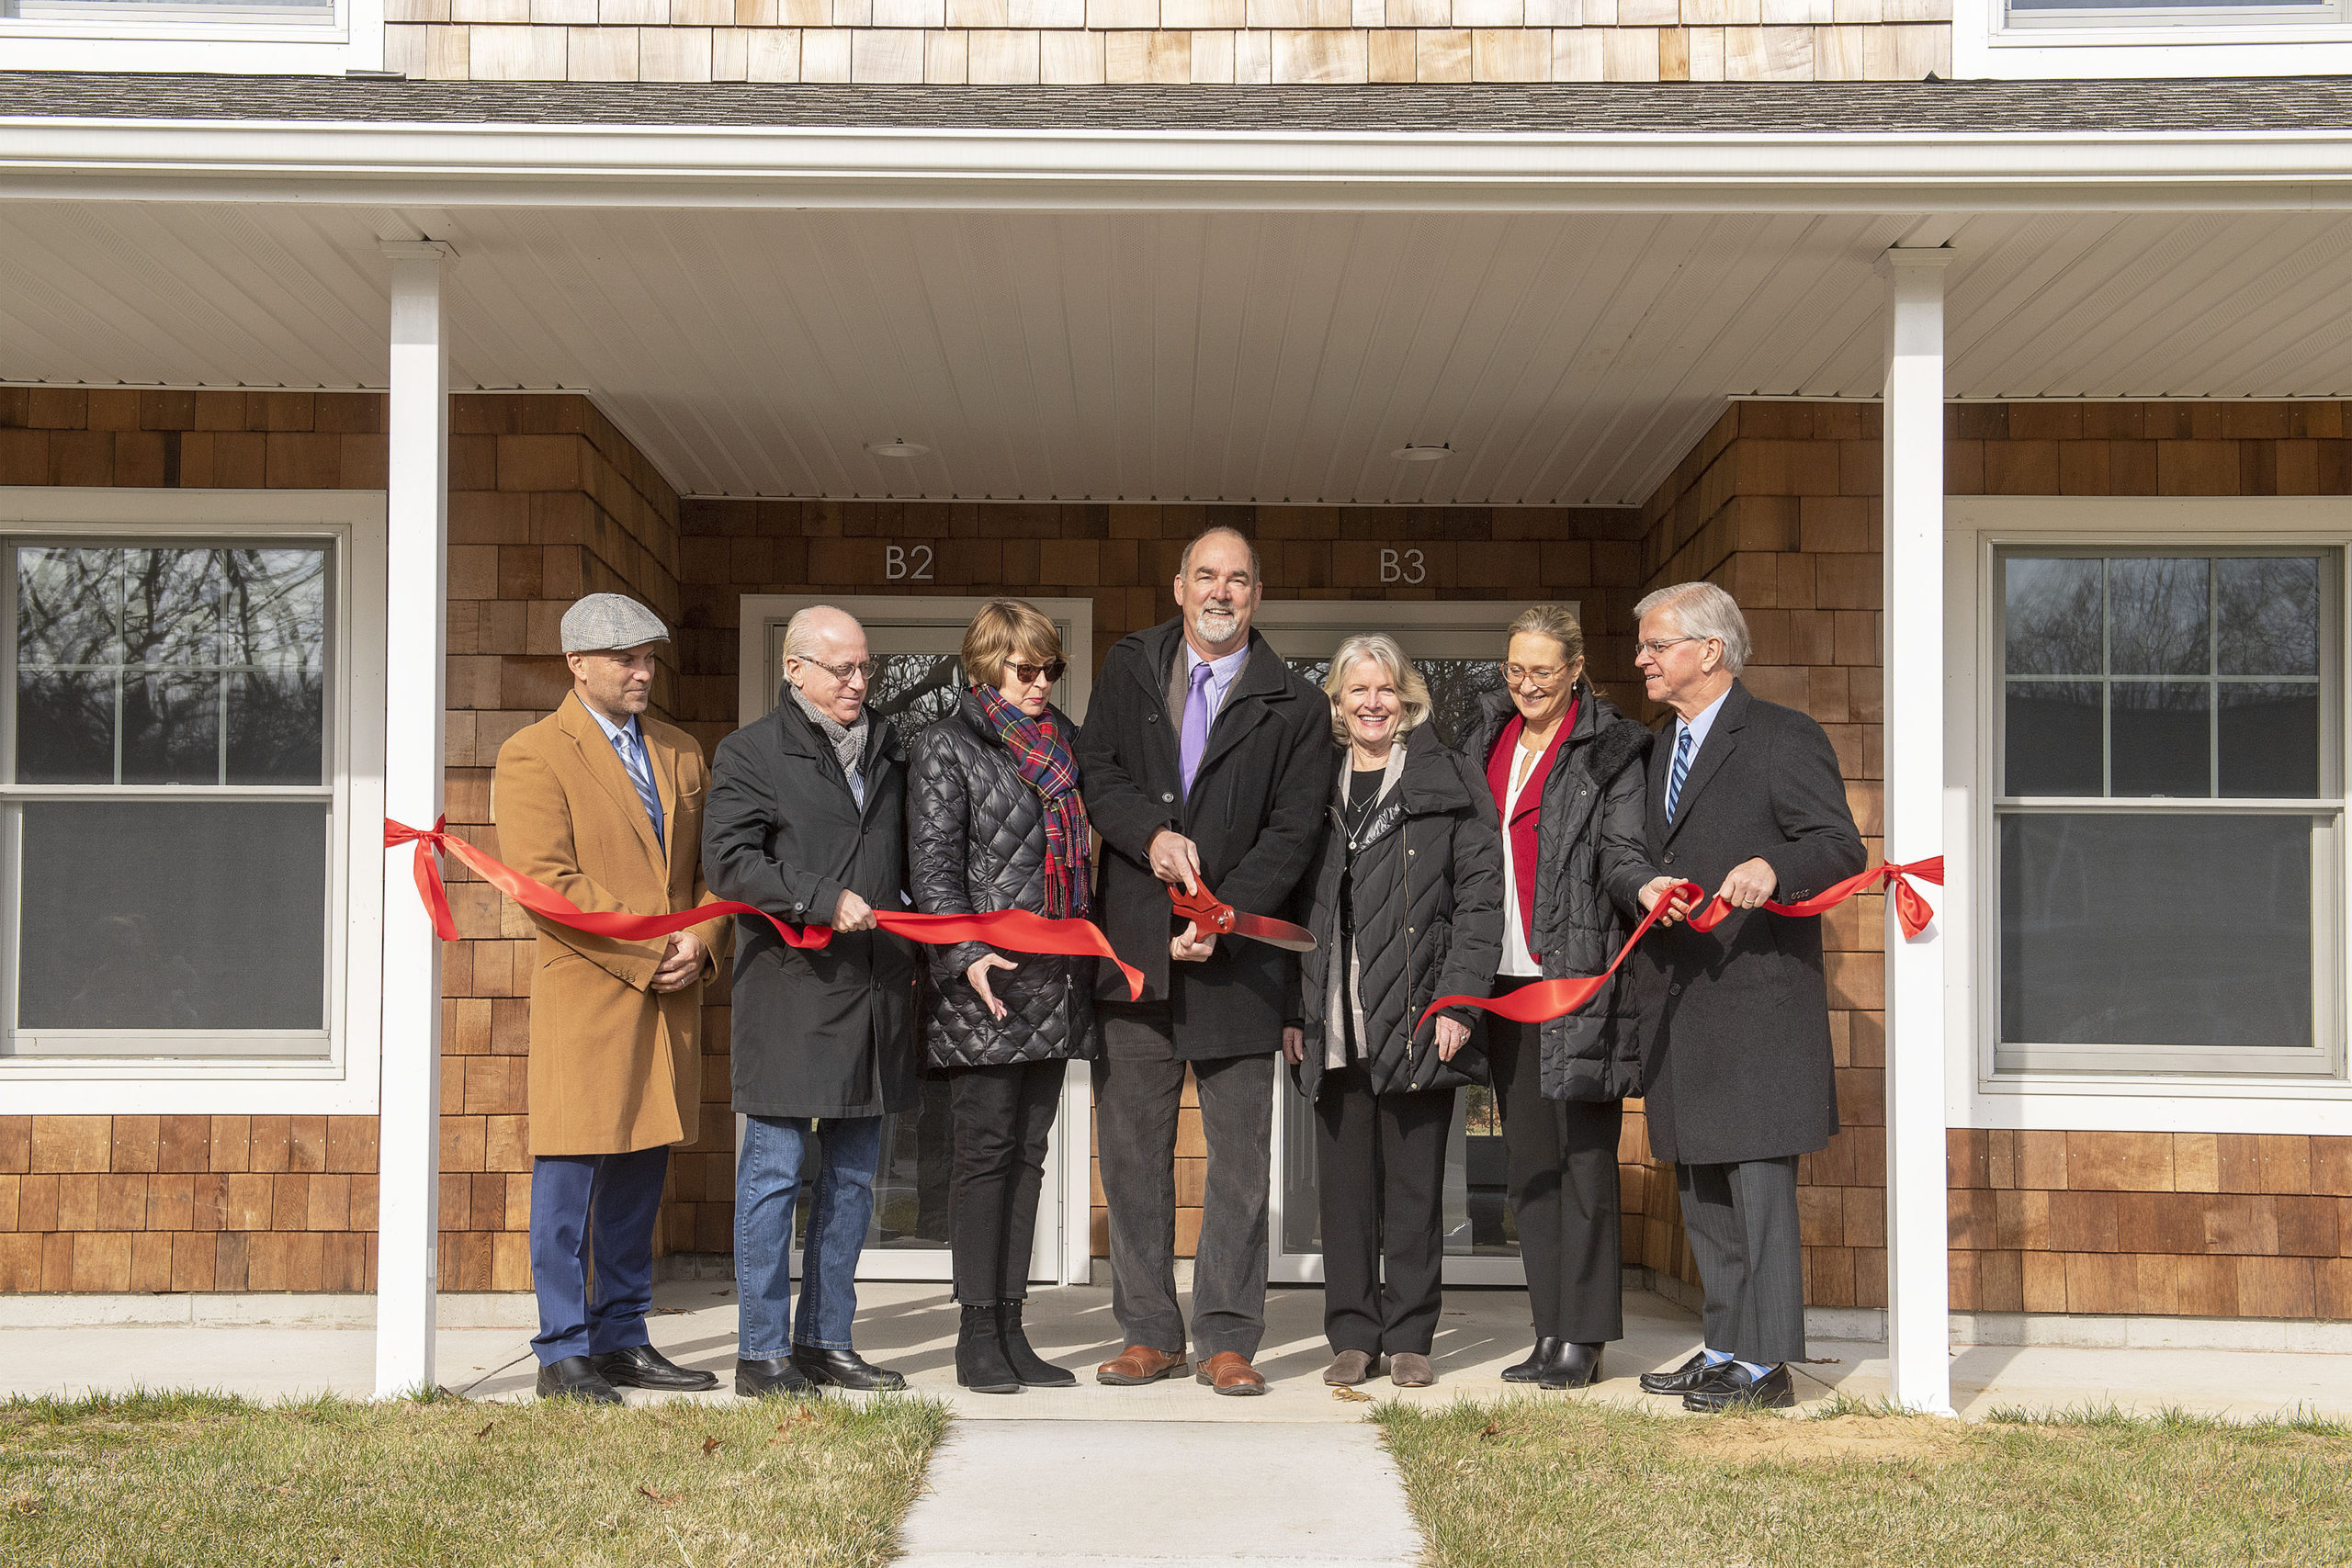 A ribbon-cutting ceremony was held to inaugurate the new condominiums at 181 Accabonac Road as part East Hampton Town Affordable Housing Project on Friday. In attendence were, left to right, East Hampton Town Board Members David Lys, Jeffrey Bragman and Kathee Burke-Gonzalez, East Hampton Town Supervisor Peter Van Scoyoc, East Hampton Town Board Member Sylvia Overby, Suffolk County Legislator Bridget Fleming and New York State Assemblyman Fred Thiele.